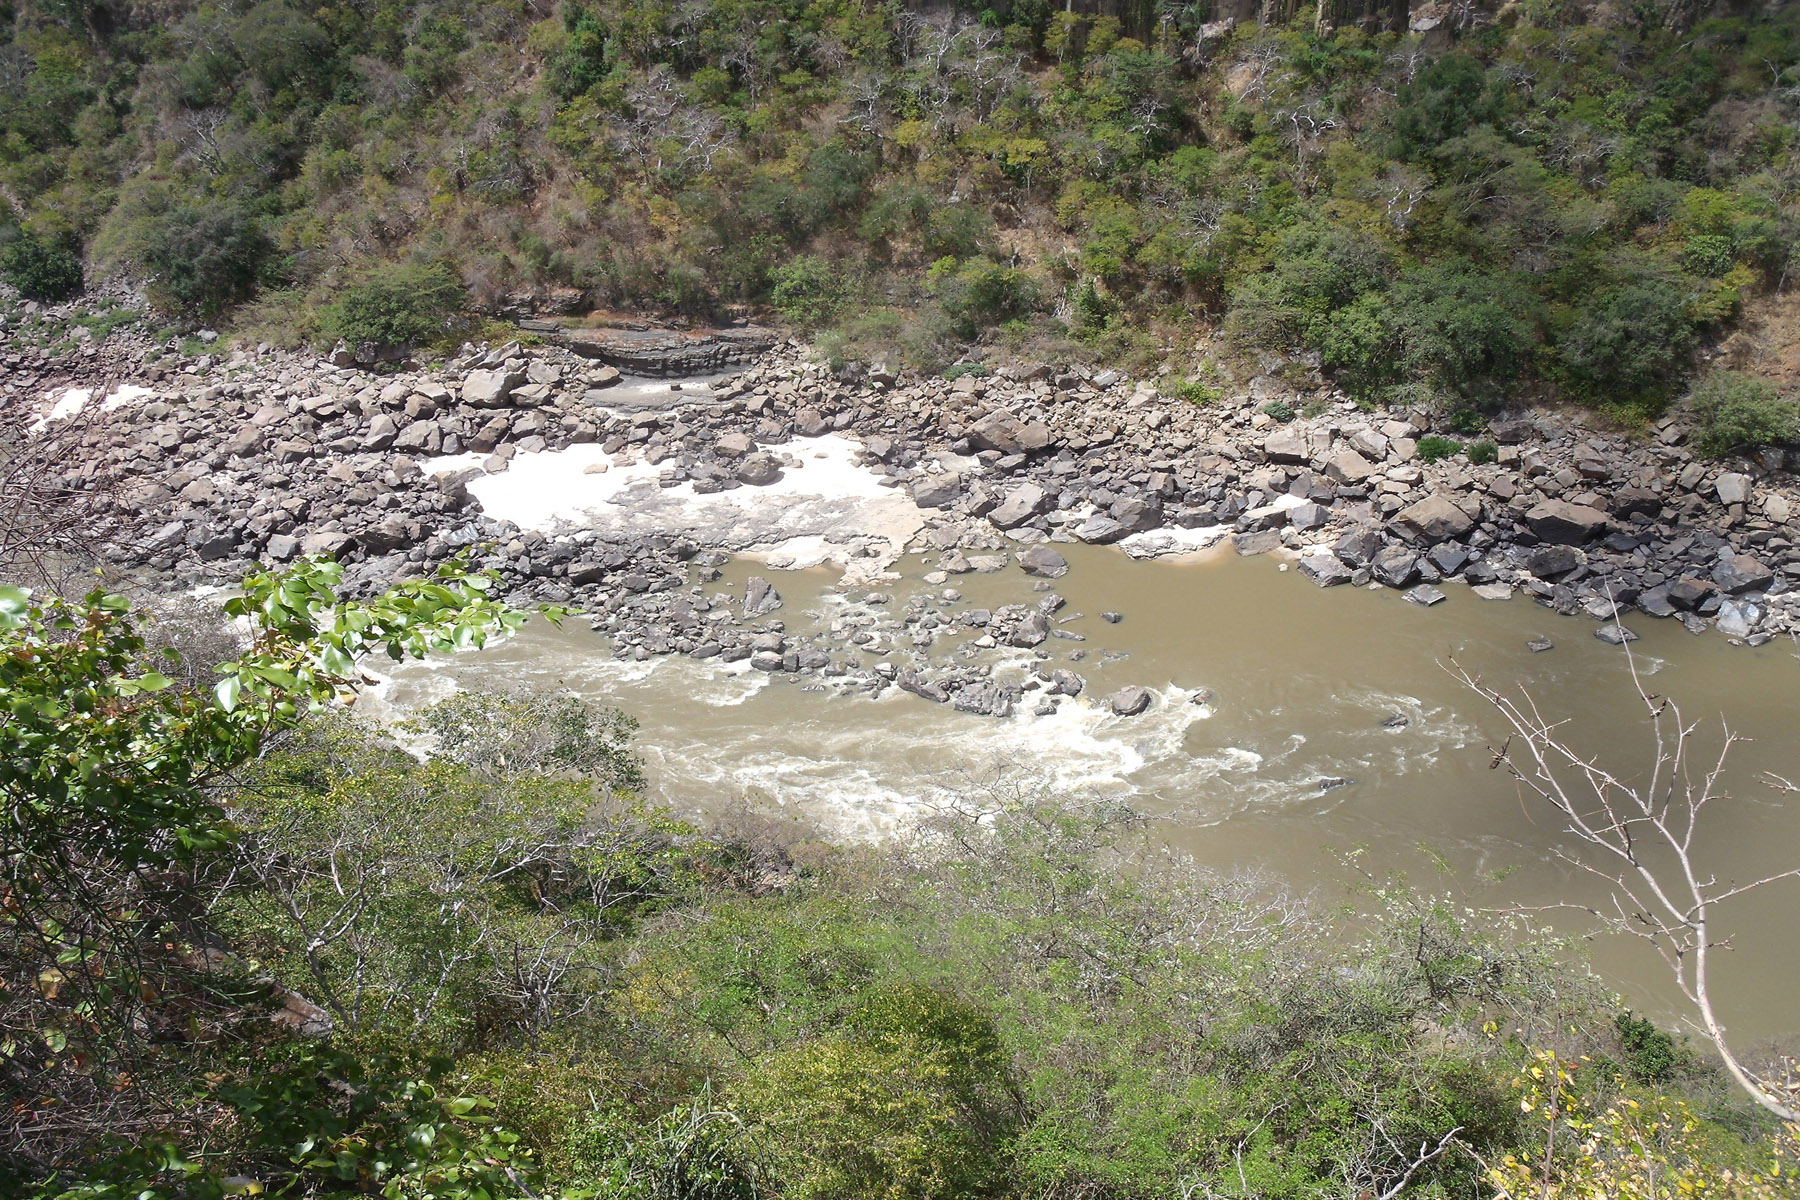 Tanzania's Selous Game Reserve in Trouble. Part 3: The Stiegler's Gorge Dam. By Dr. Rolf D. Baldus